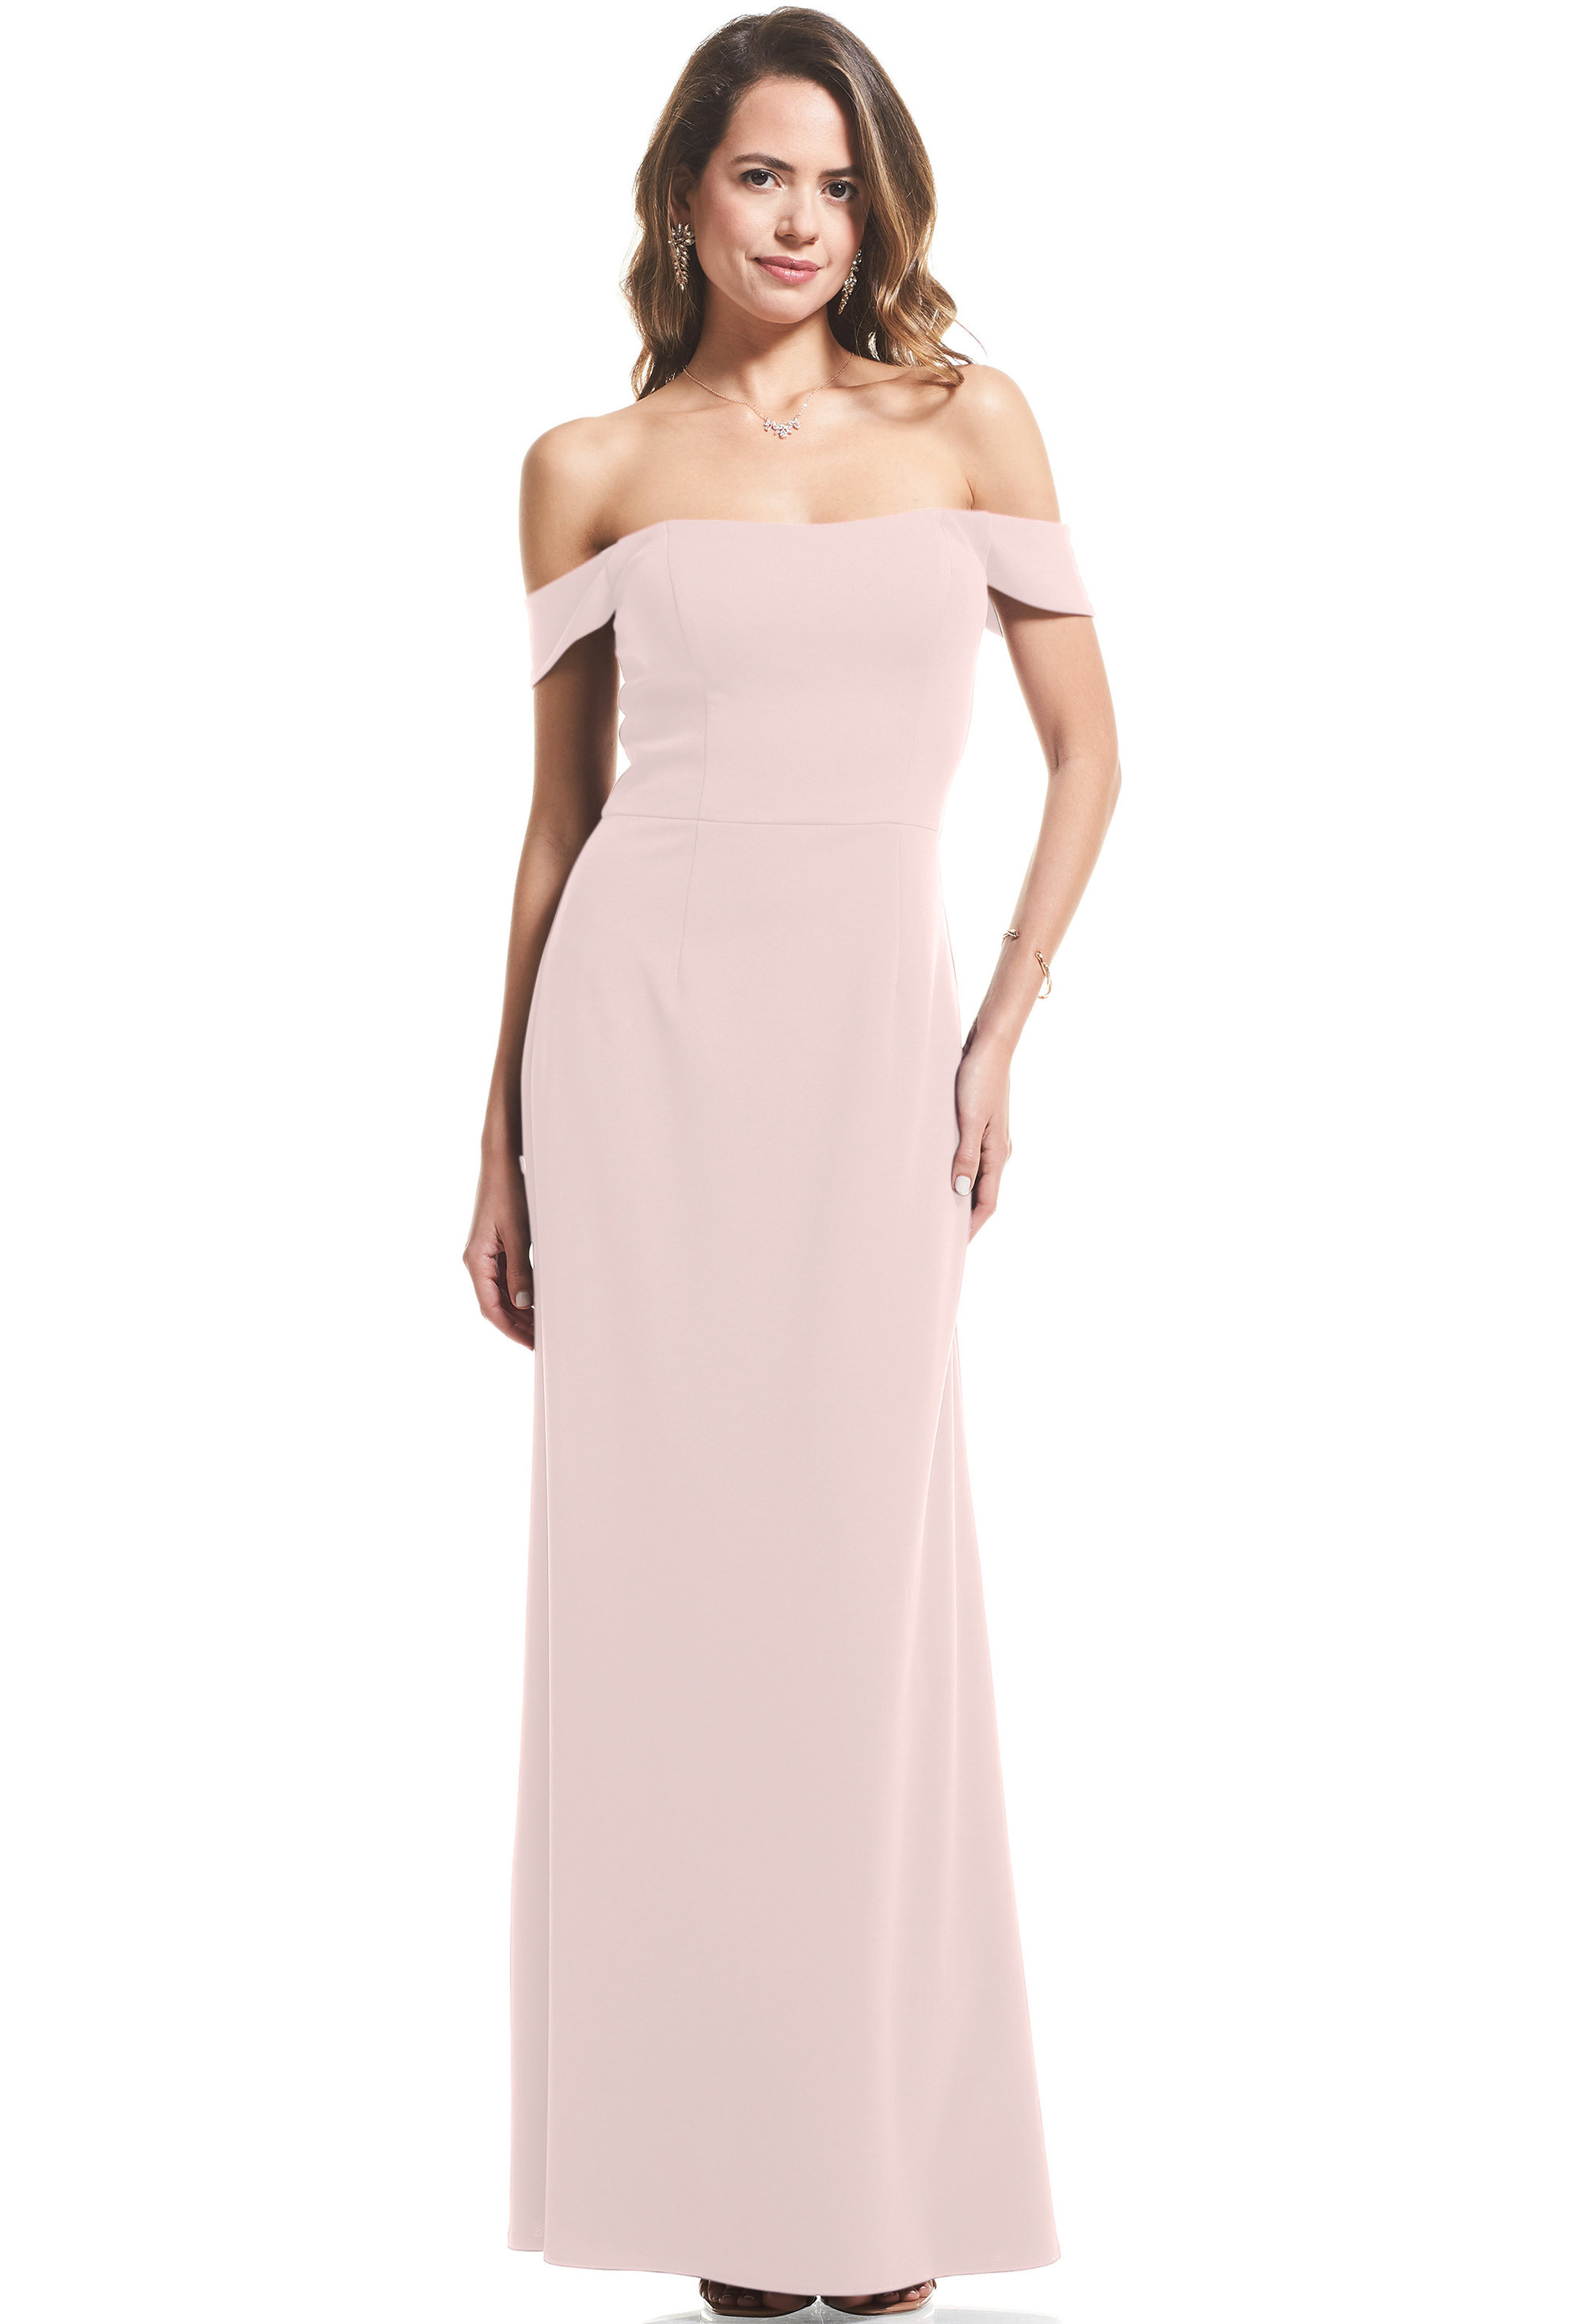 Bill Levkoff BALLET Stretch Crepe Off The Shoulder Mermaid gown, $99.00 Front